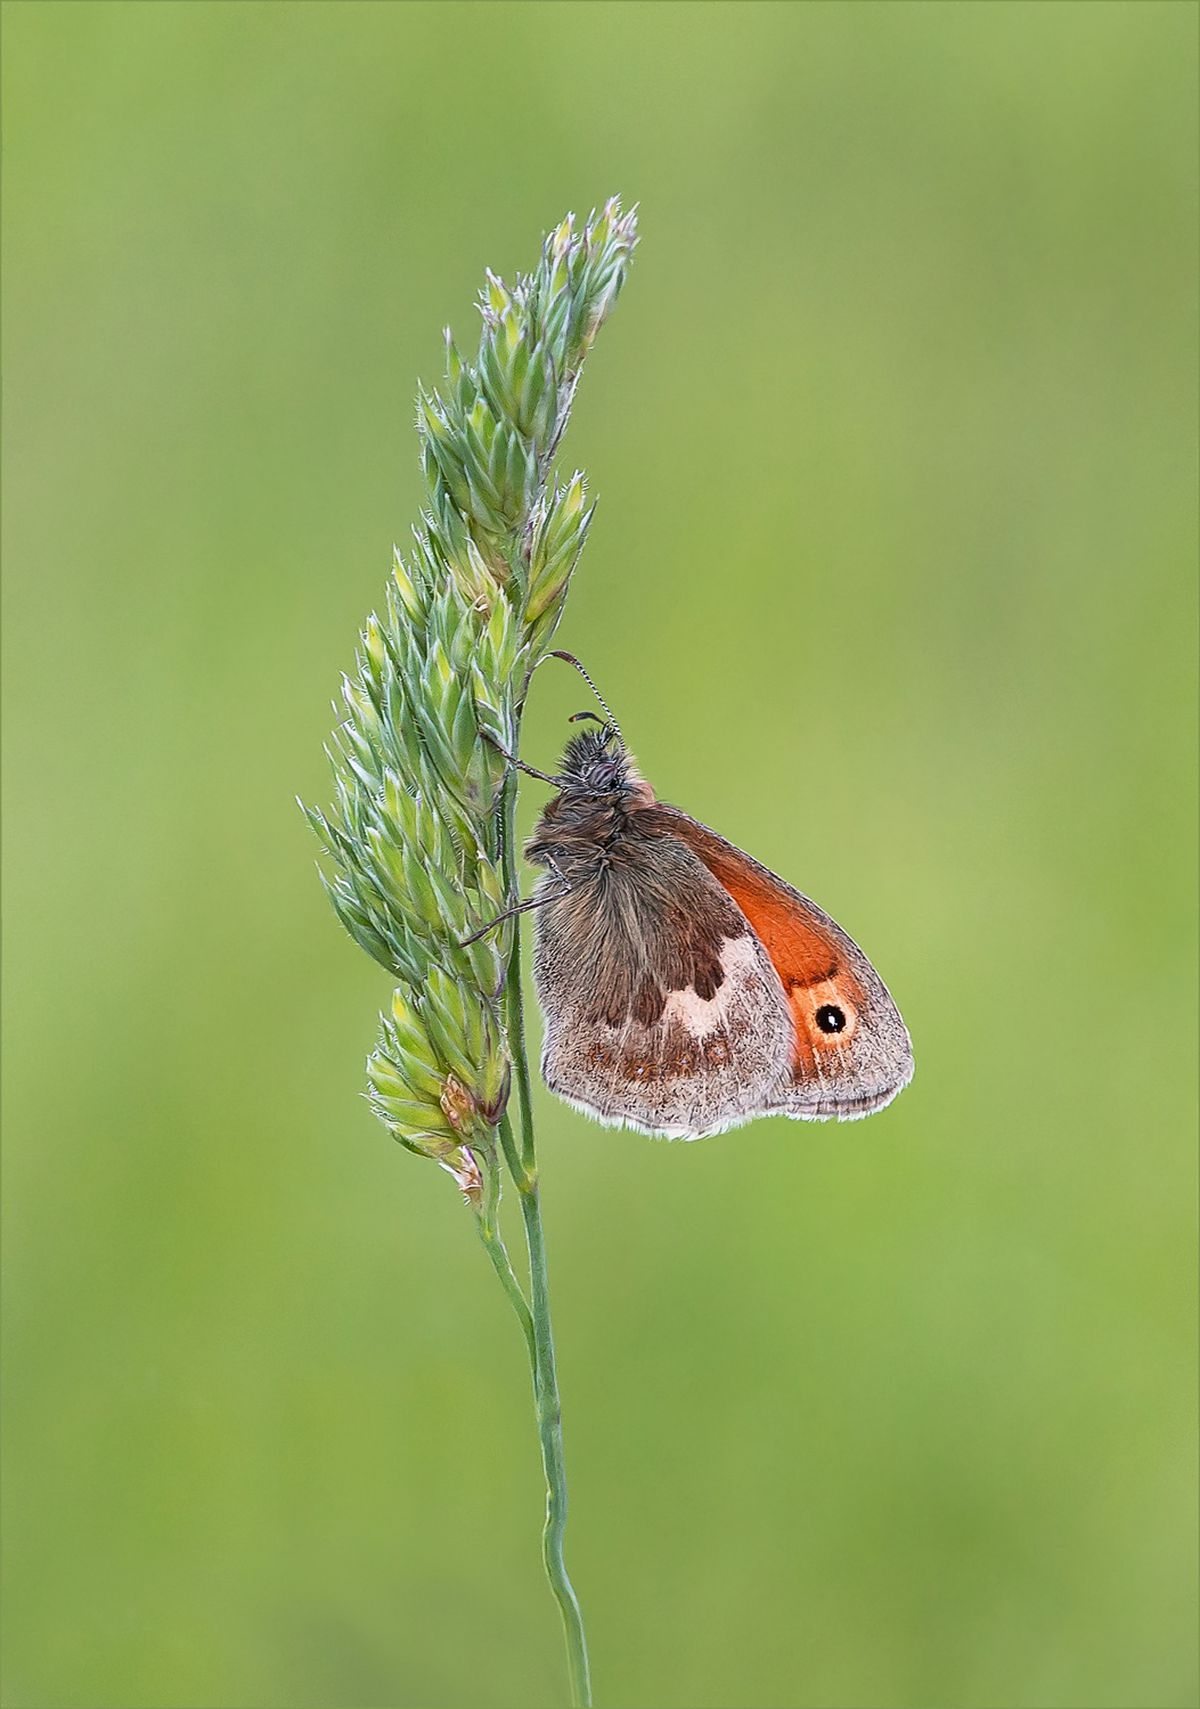 Darron's image of a small heath butterfly